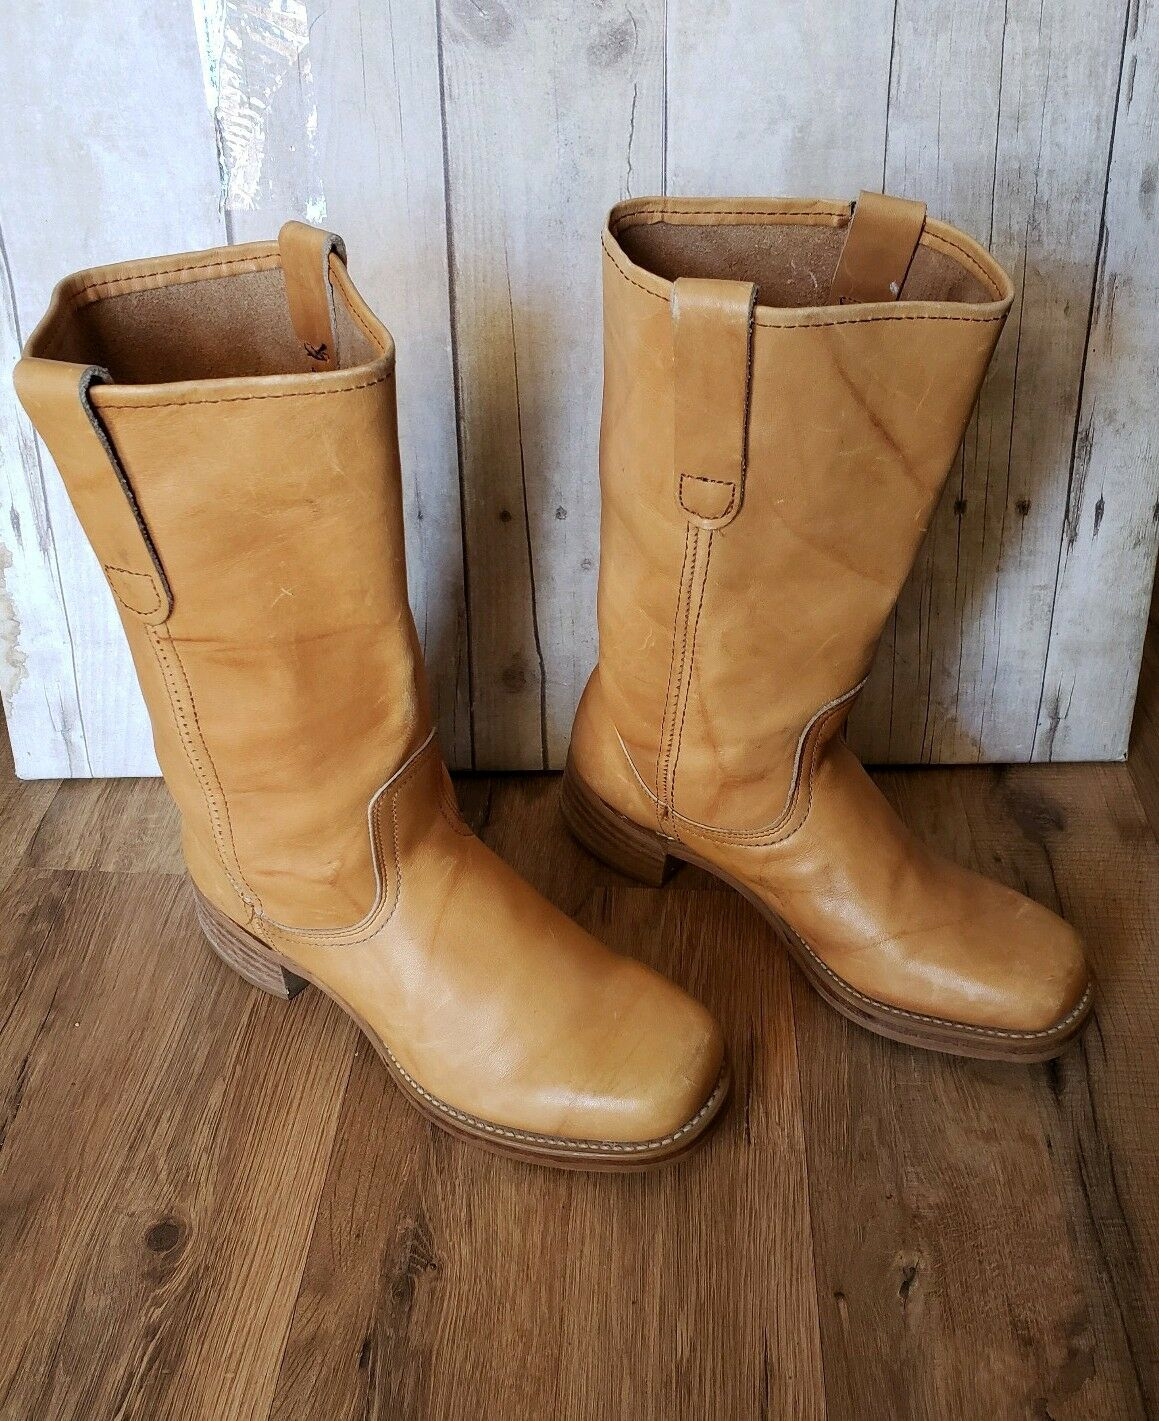 Sears VTG  Tan Leather Square  St Toe Motorcycle Western Boots 87411 Size 7.5 D